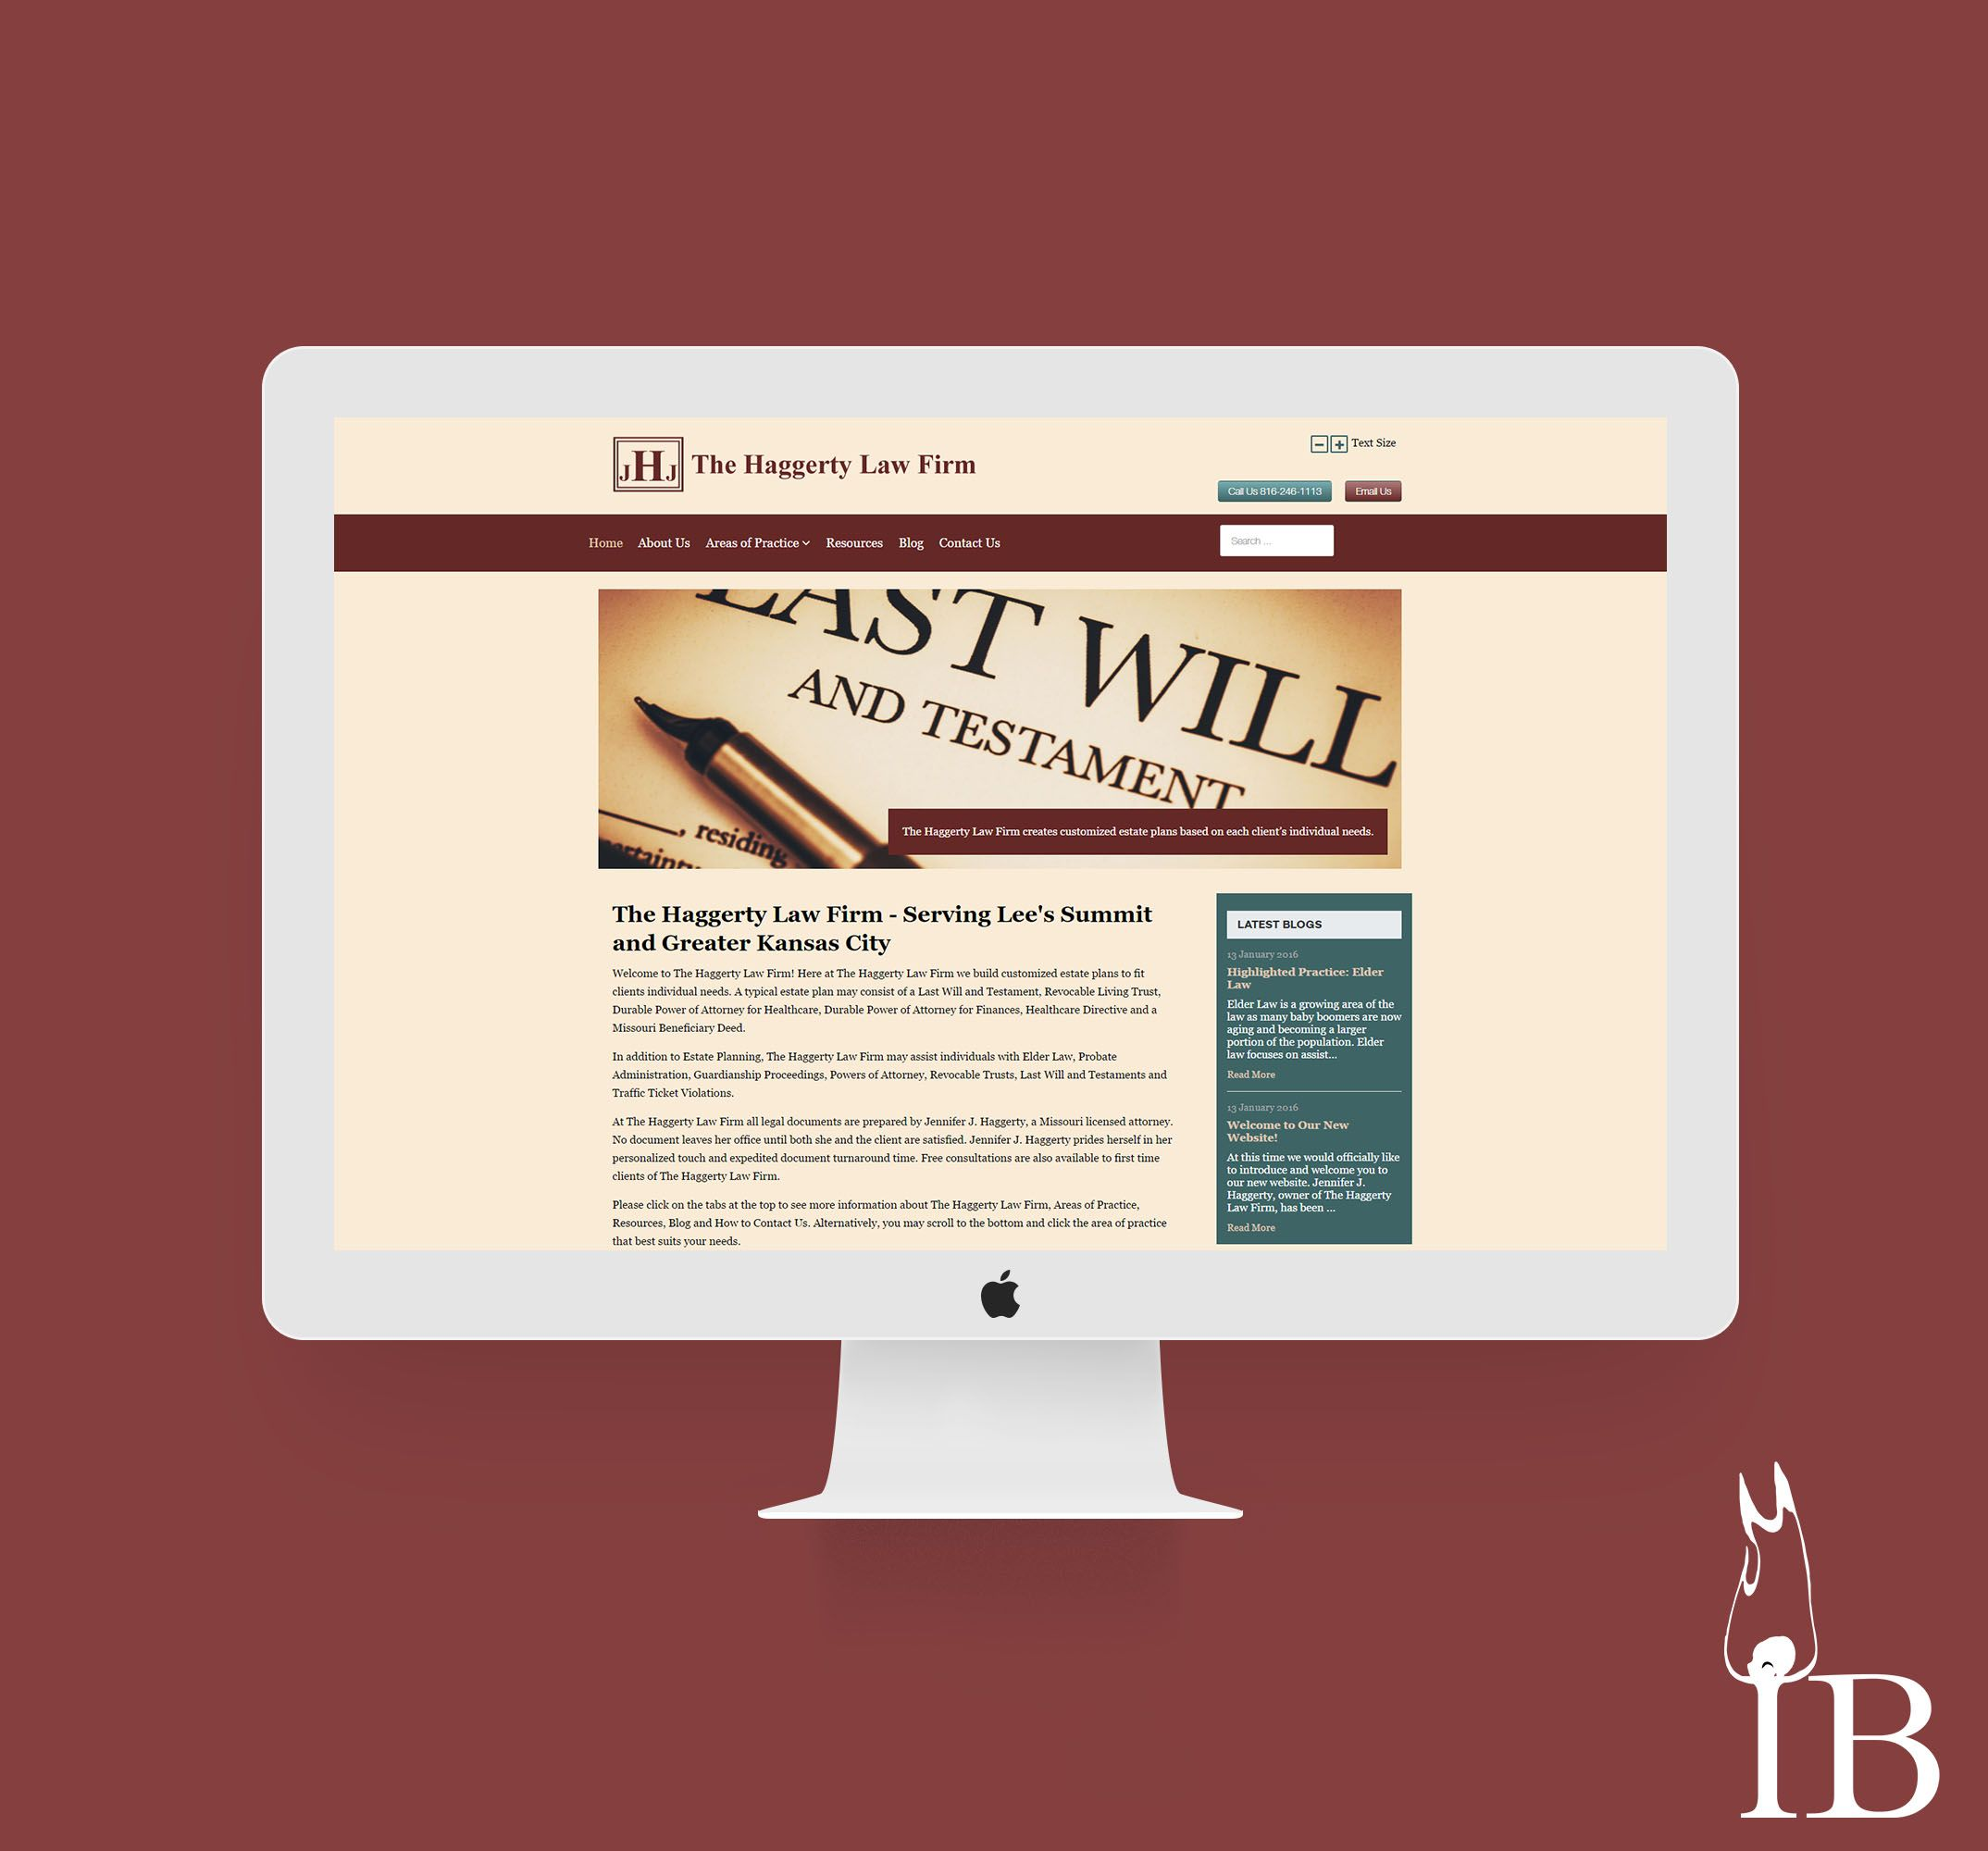 The Haggerty Law Firm Web Design by Igniting Business #webdesign